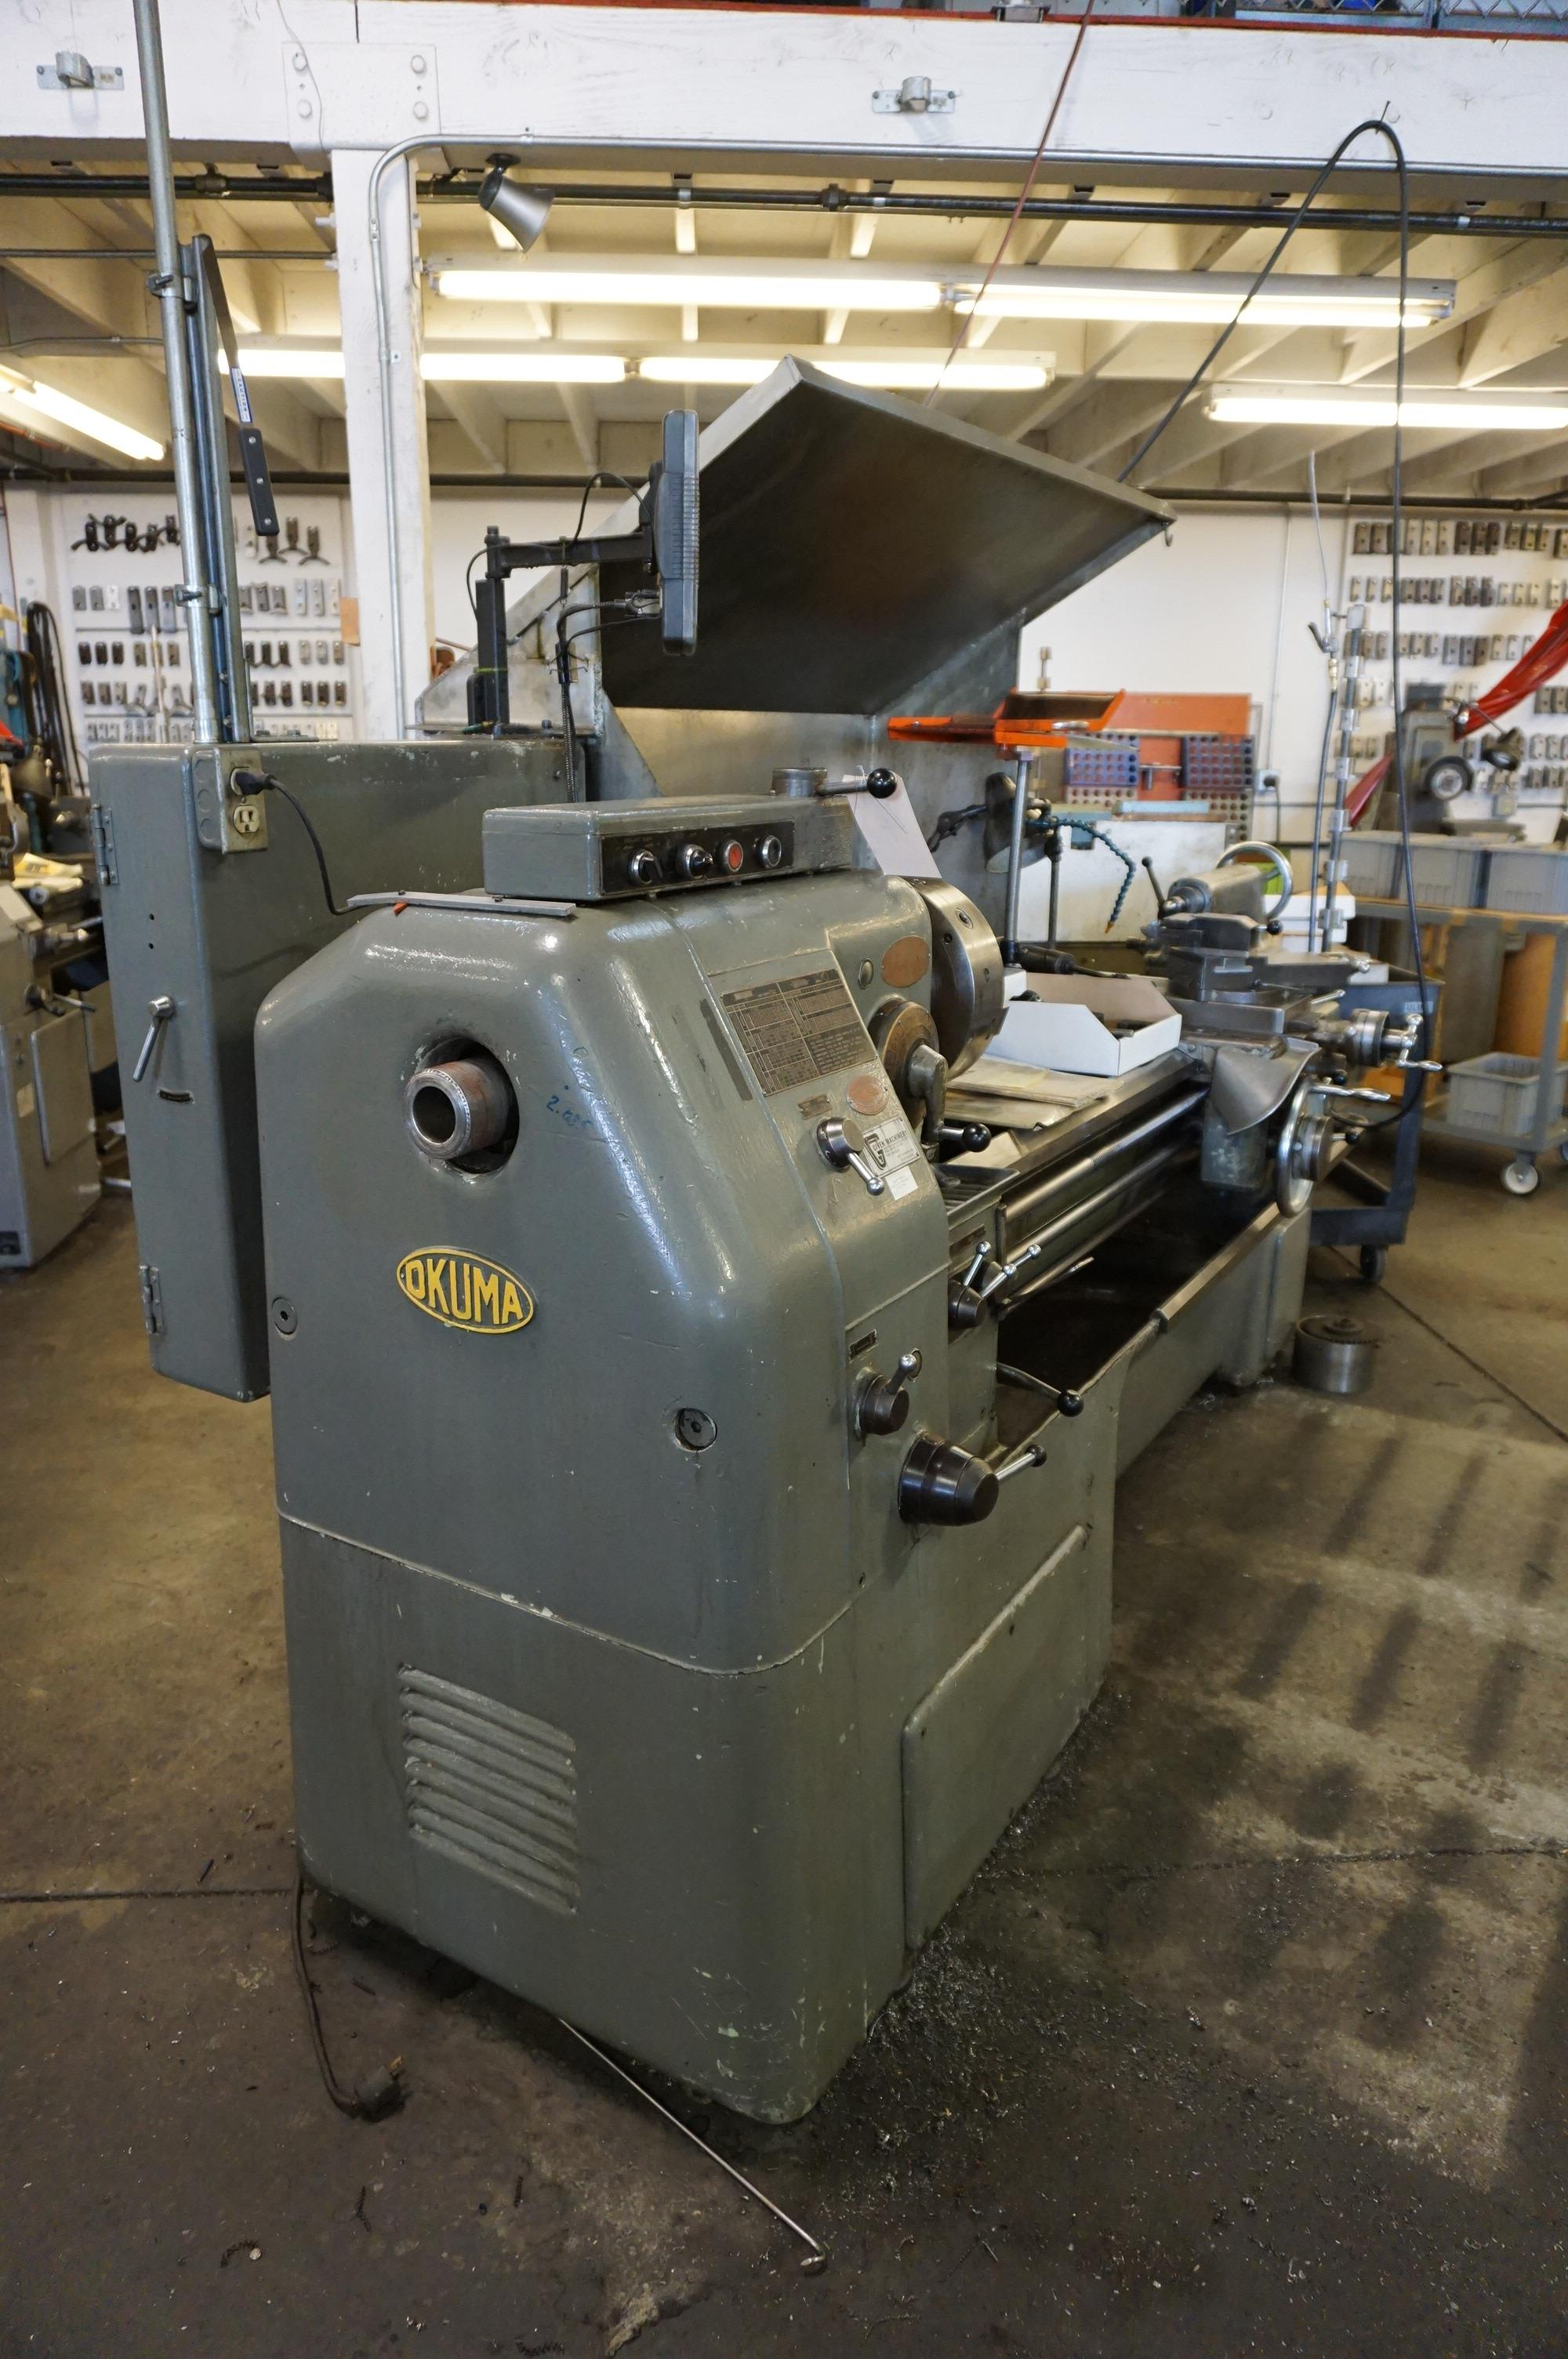 """OKUMA LS 16"""" x 47"""" SWING, S/N 4103-9309 WITH NEWALL C80 DRO, WITH ORIGINAL MANUALS AND SERVICE - Image 2 of 9"""